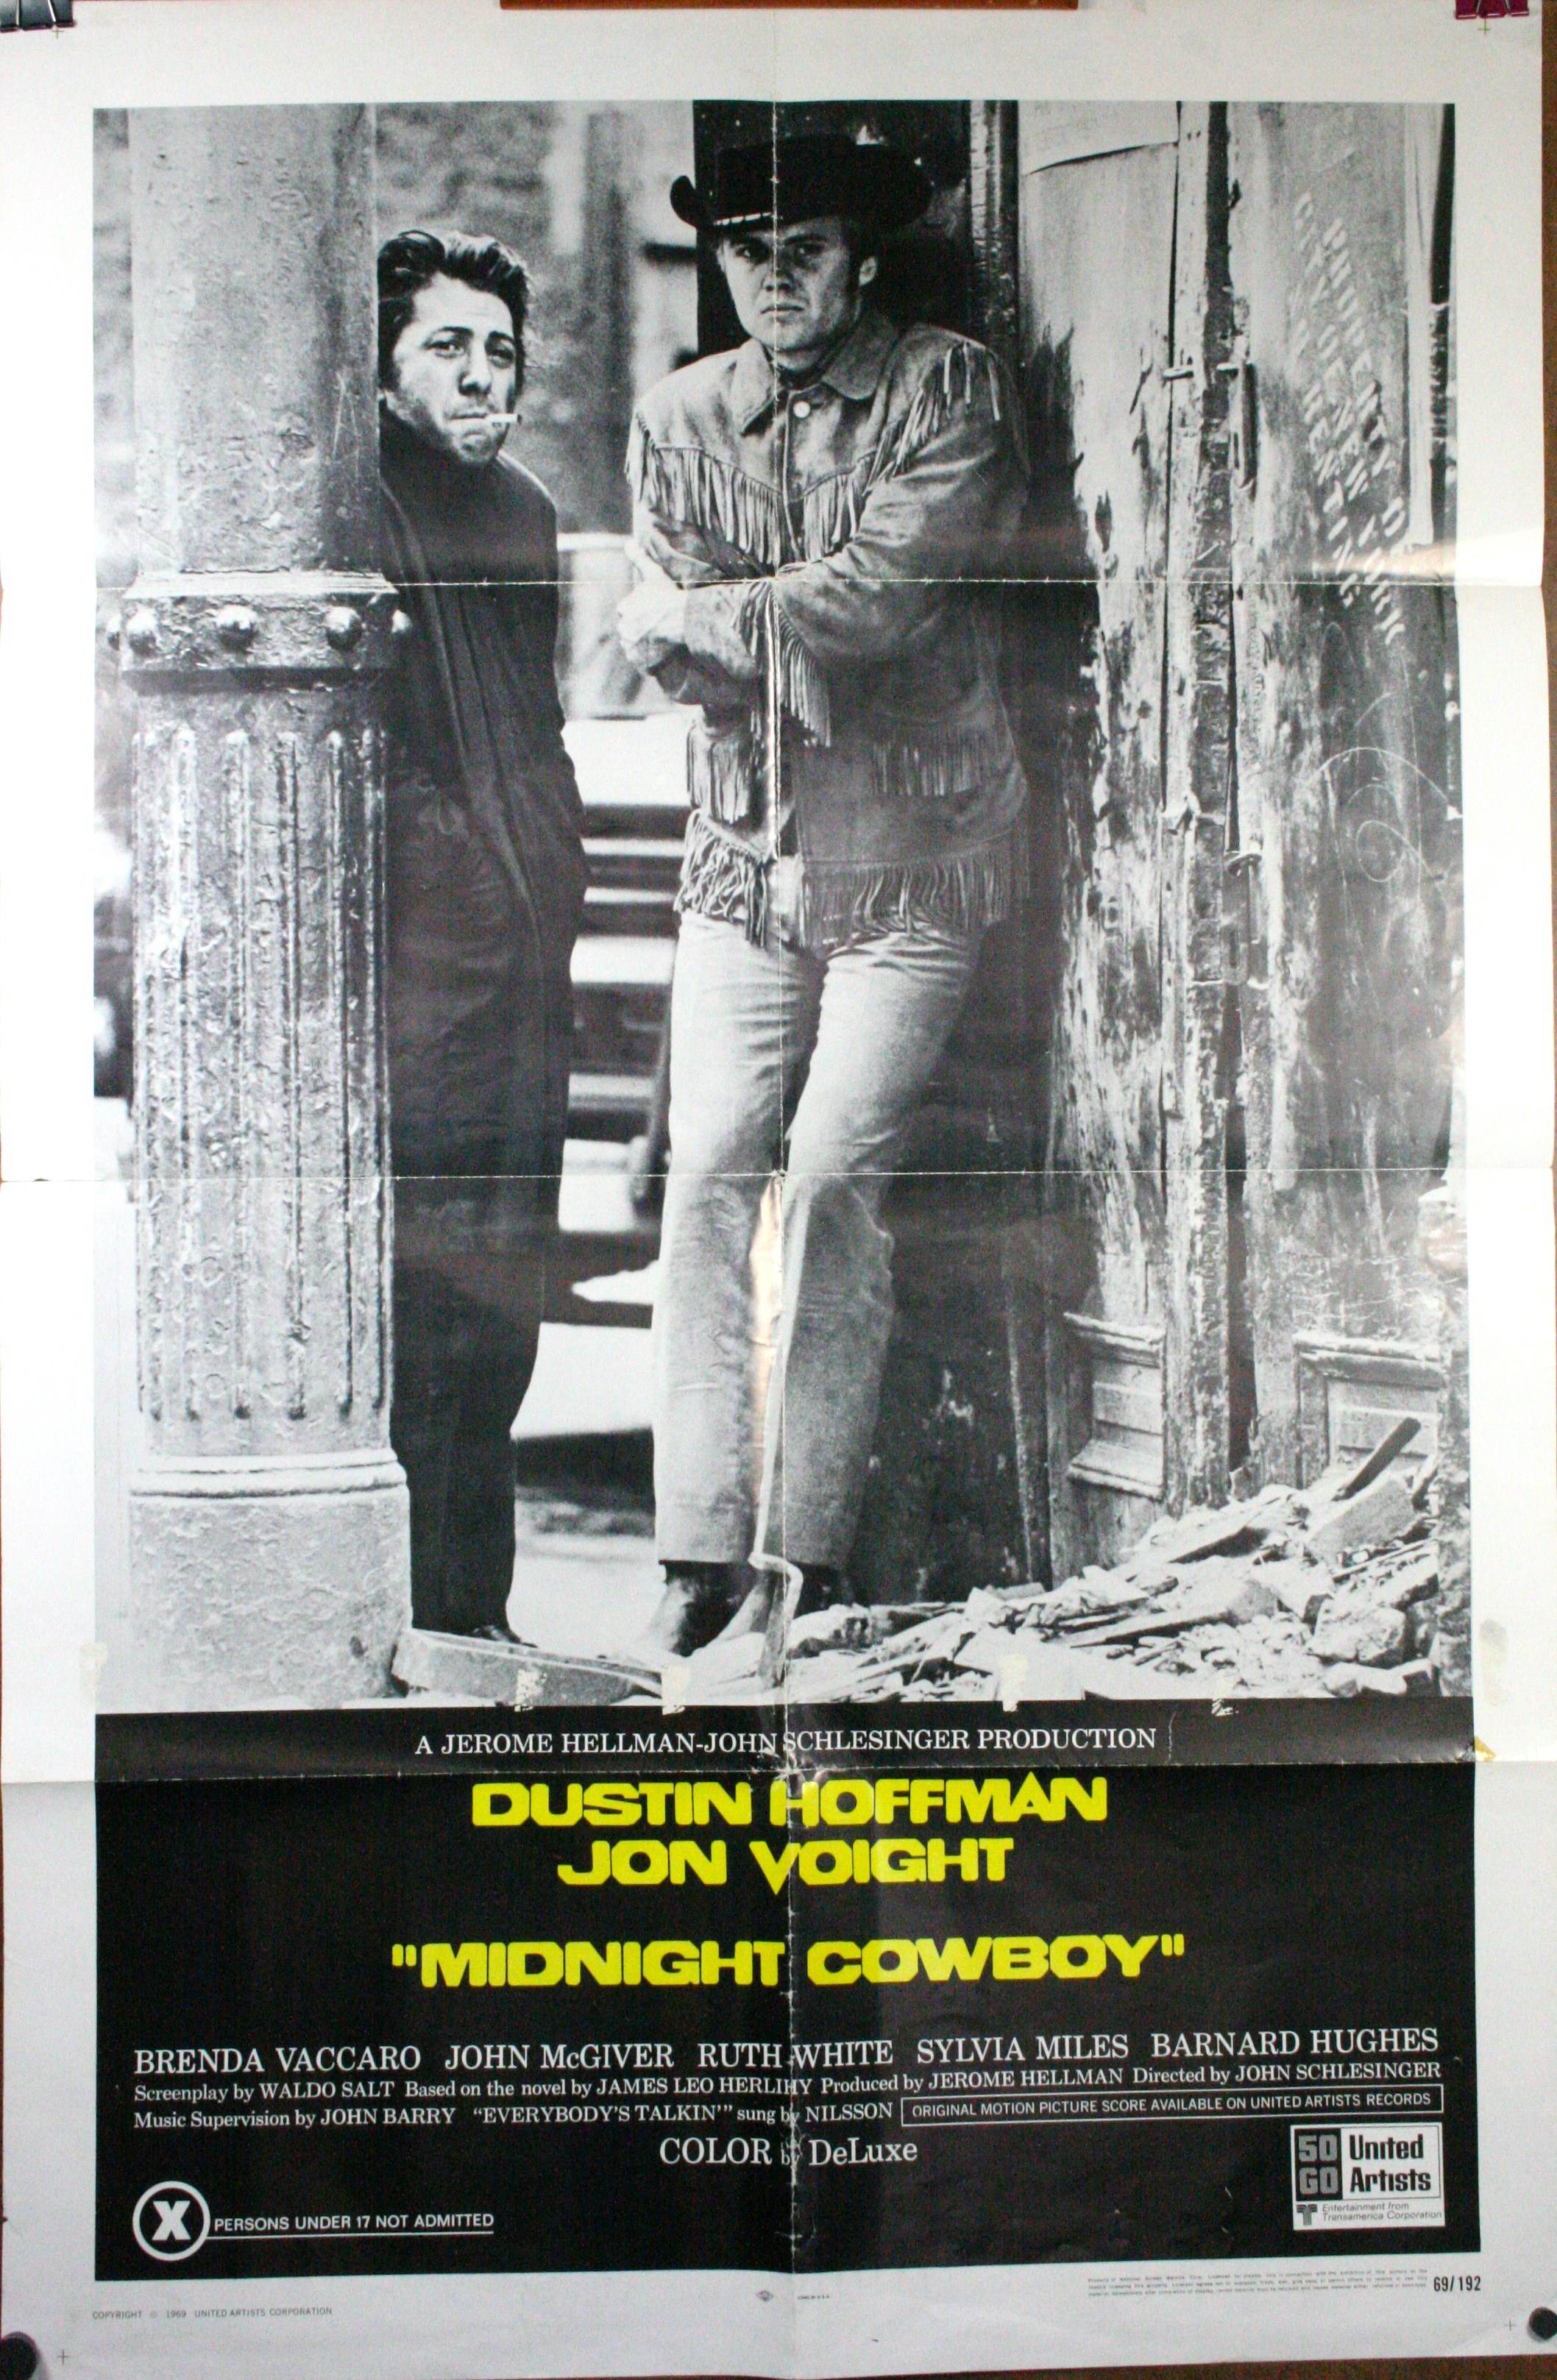 MIDNIGHT COWBOY, Original X rated movie poster